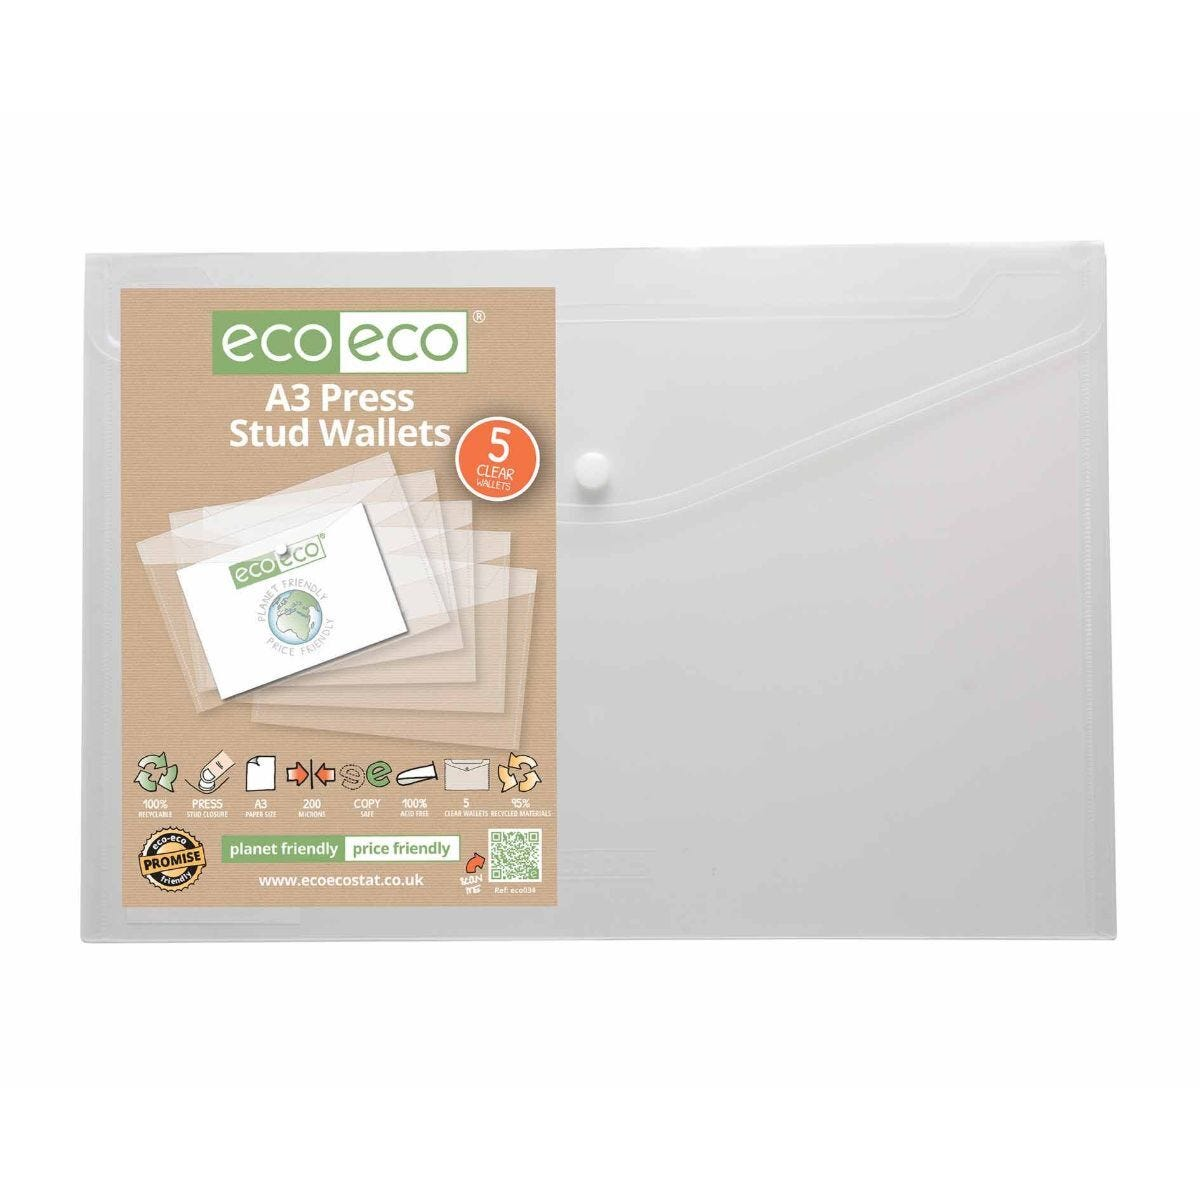 Eco-eco Press Stud Wallets A3 Pack of 5